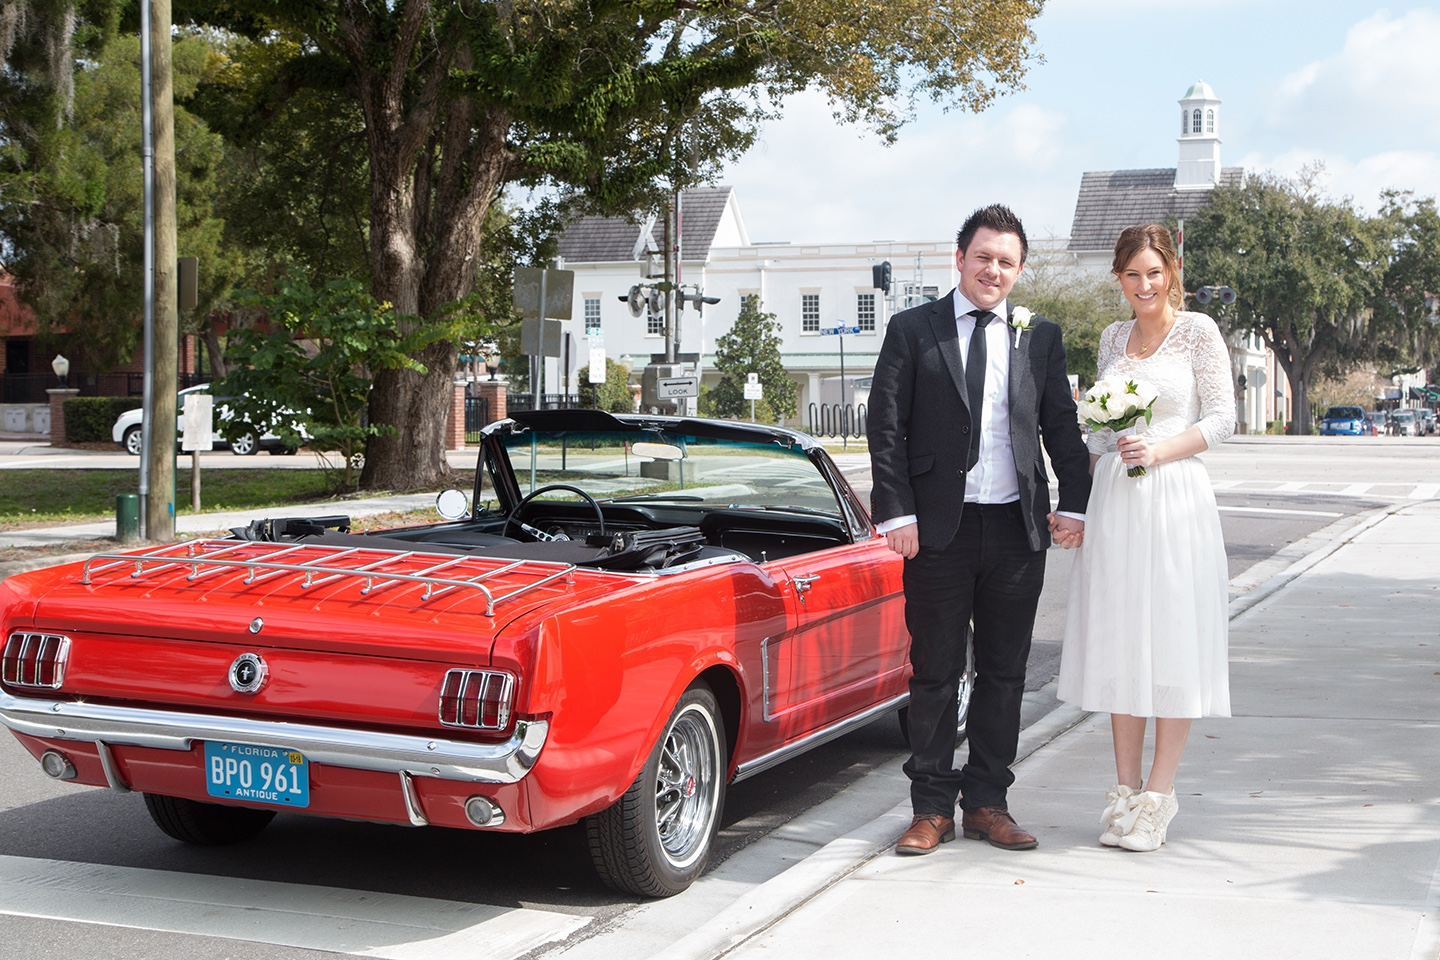 Driving away from their Orlando wedding in style in a bright red Ford Mustang!